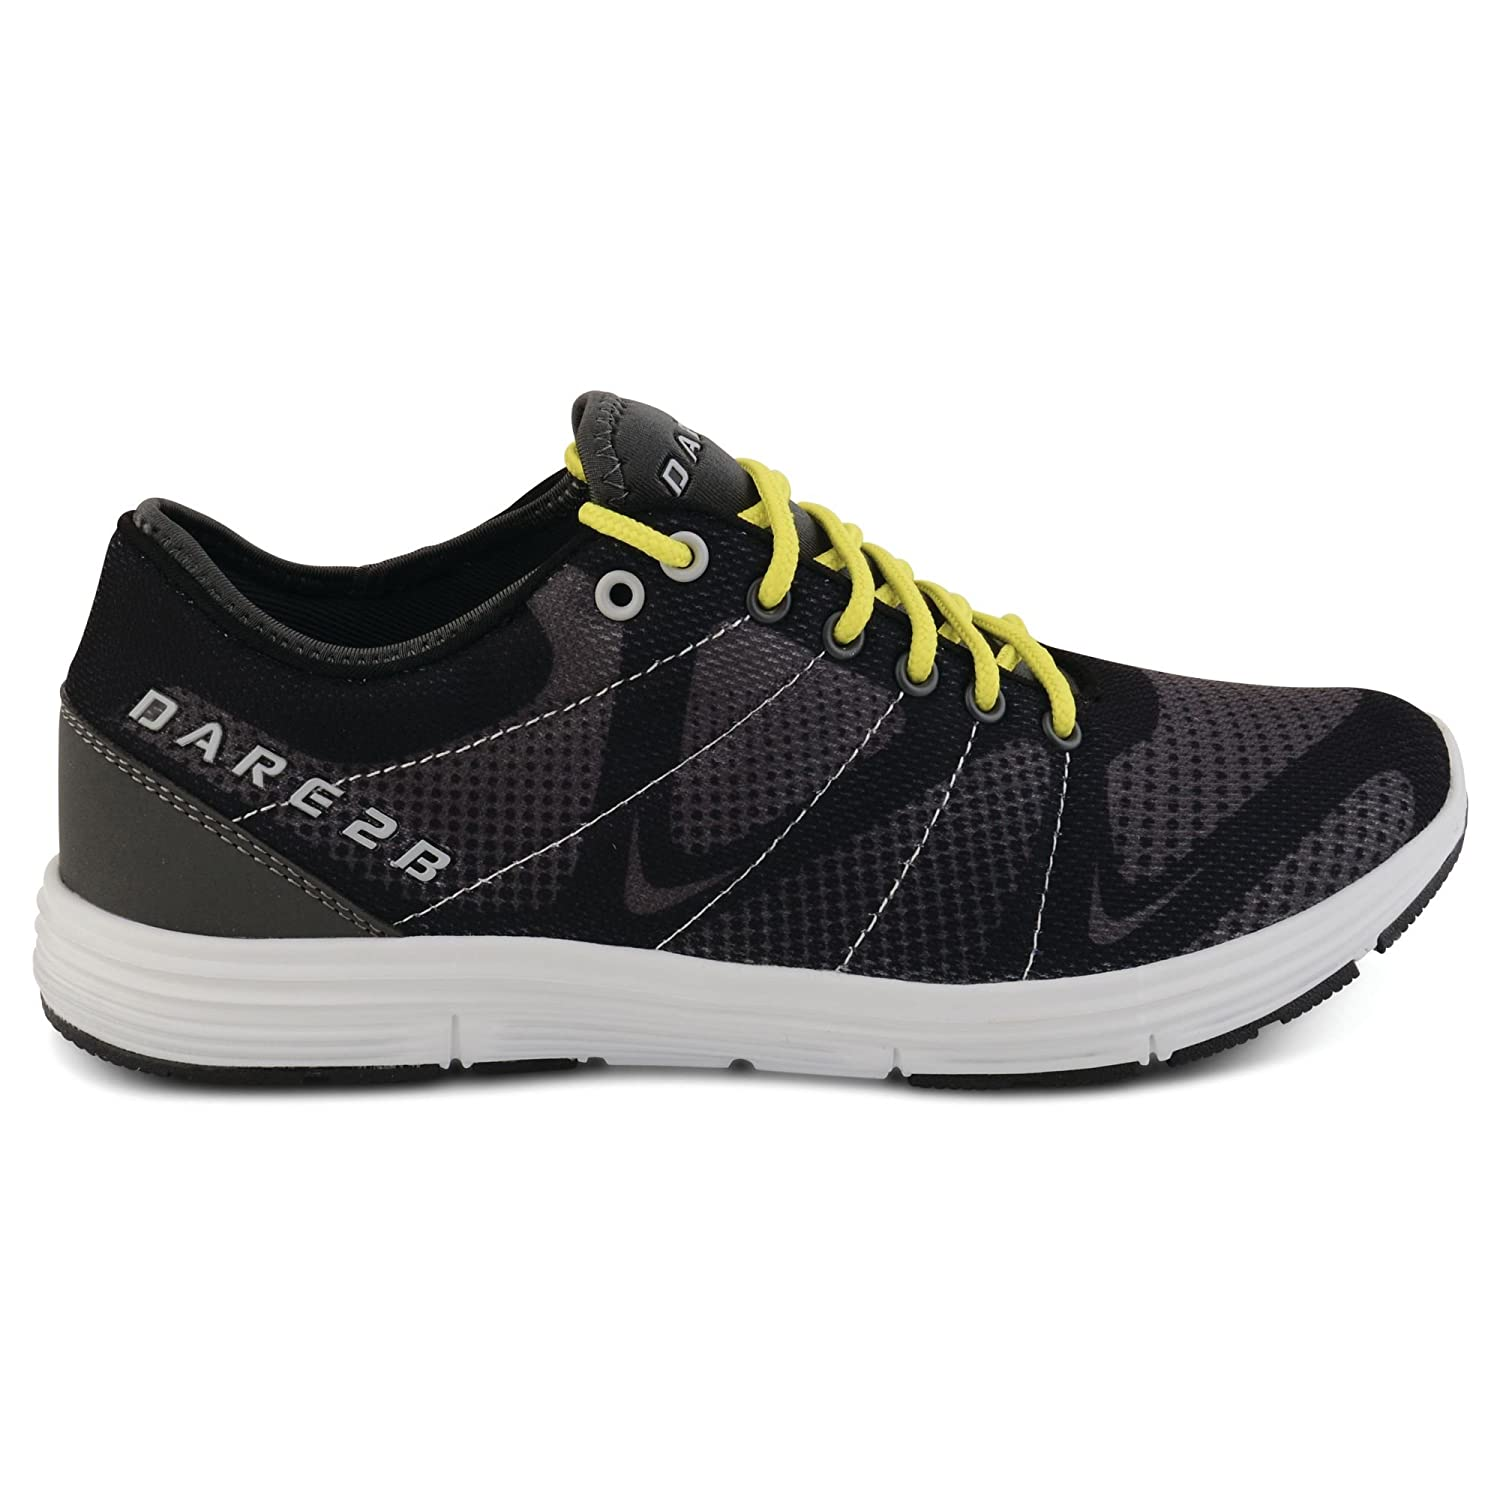 b980af4d47 Dare 2b Mens 2018 Infuze Trainers: Amazon.co.uk: Shoes & Bags